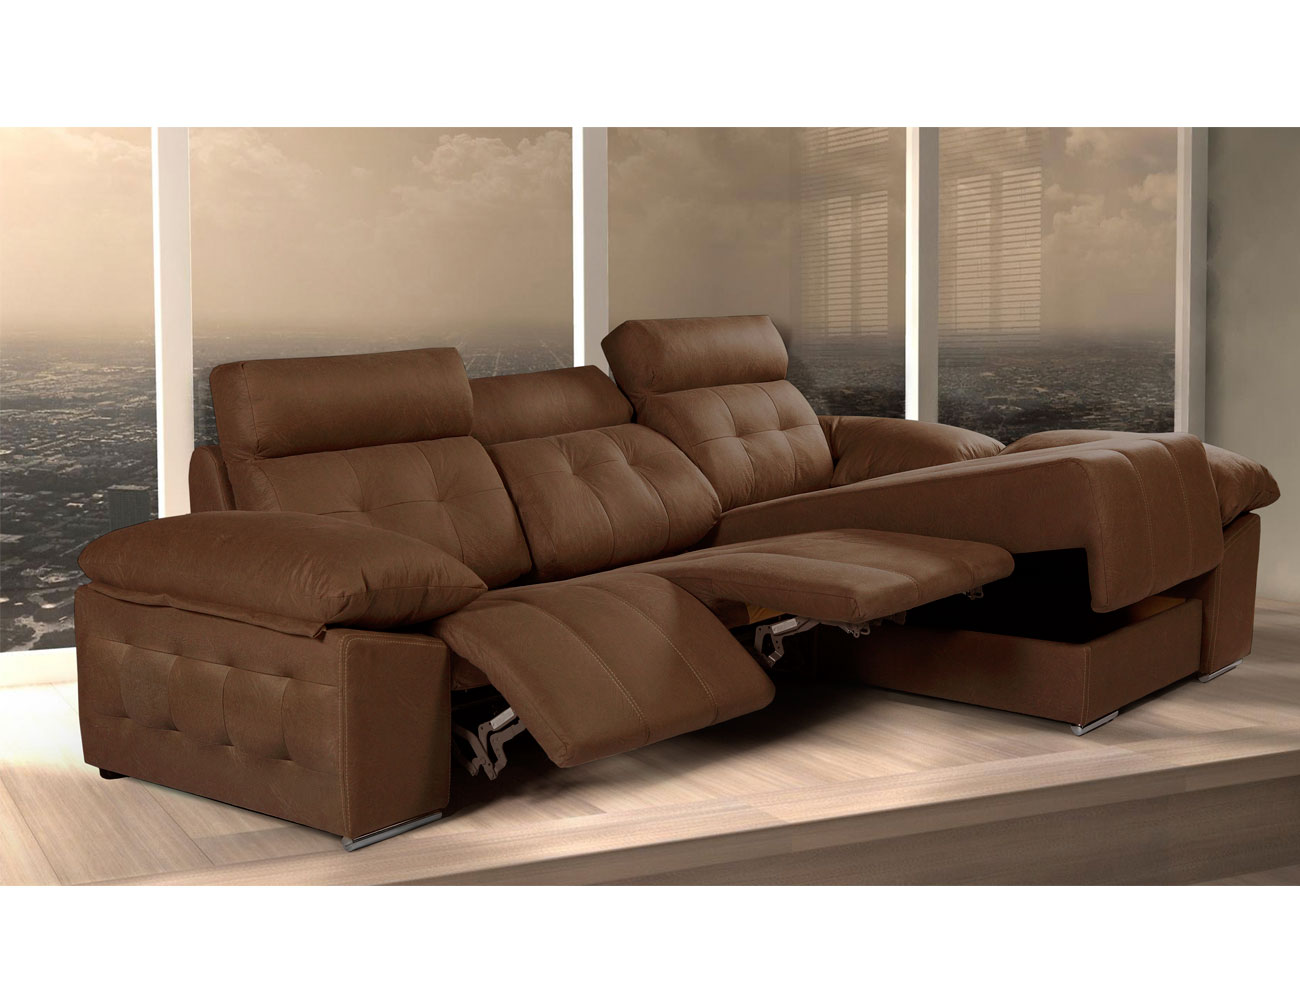 Sofa chaiselongue relax arcon electrico capitone